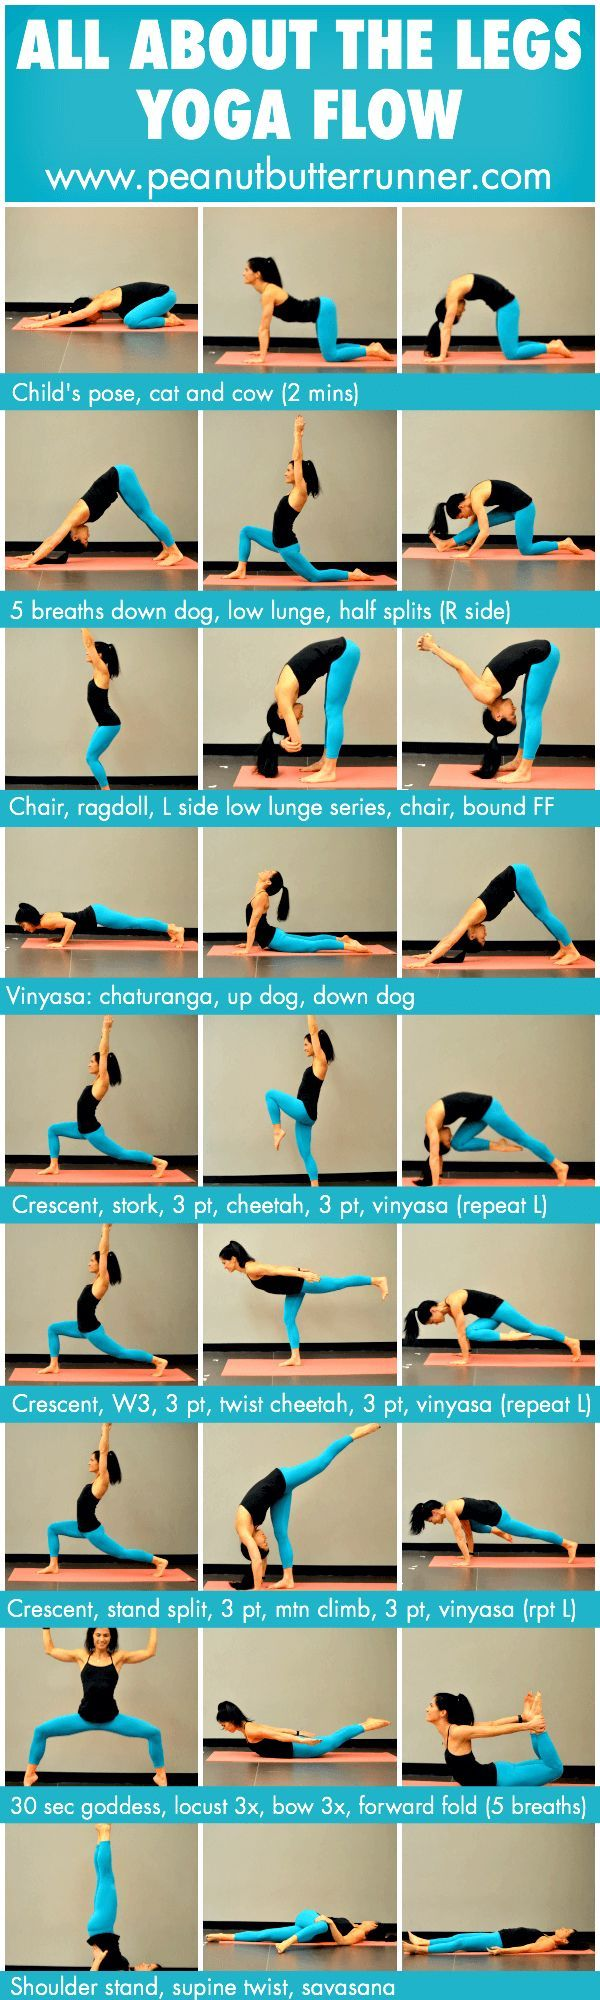 All About the Legs Yoga Flow {Photo Guide & Video} #shirtsale